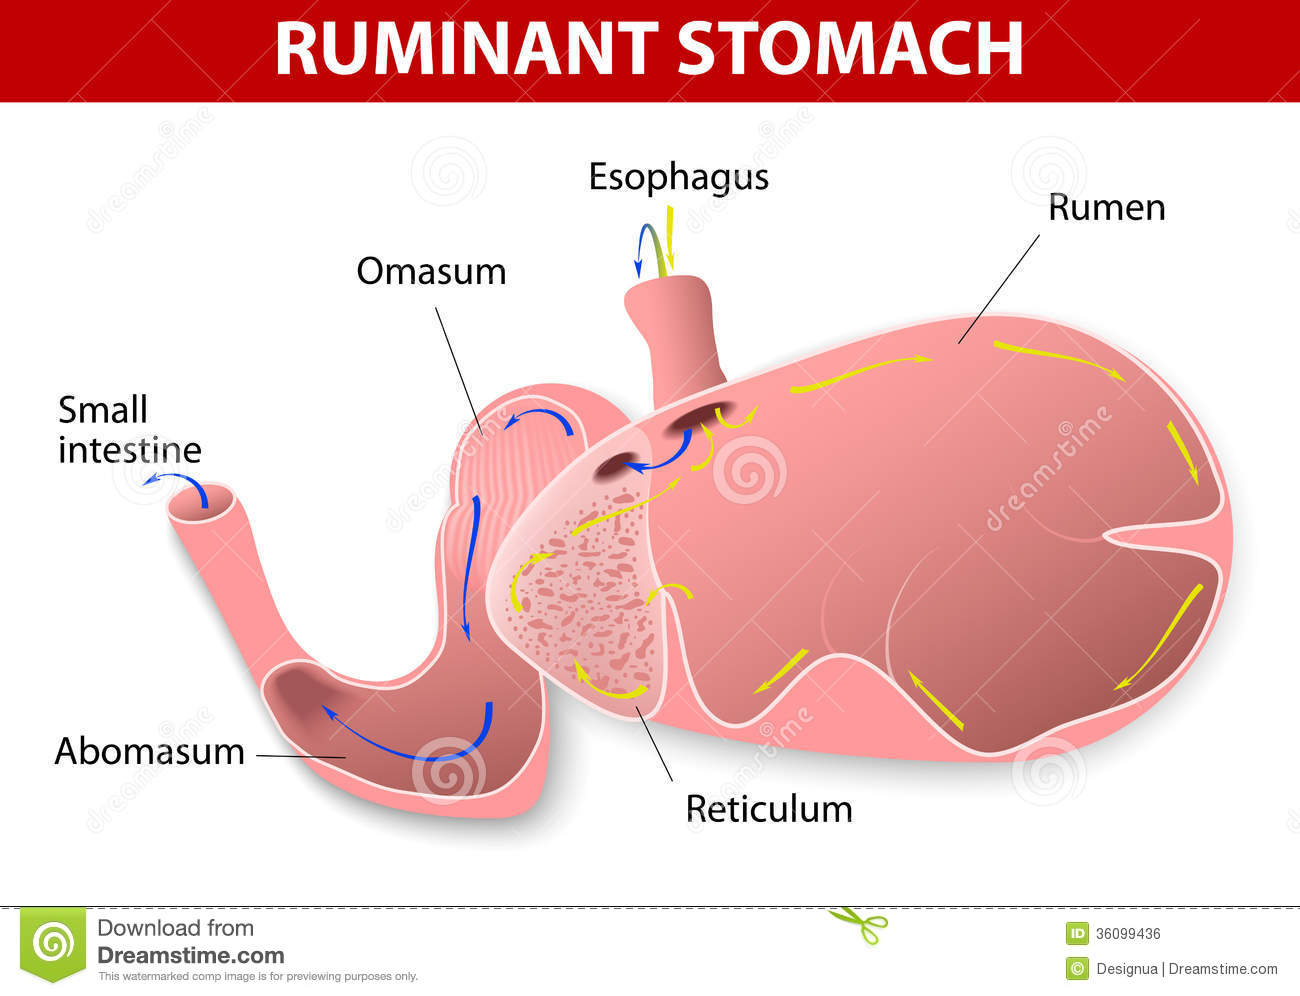 hight resolution of ruminant stomach the ruminant species have one stomach that is divided into four compartments rumen reticulum omasum and abomasum